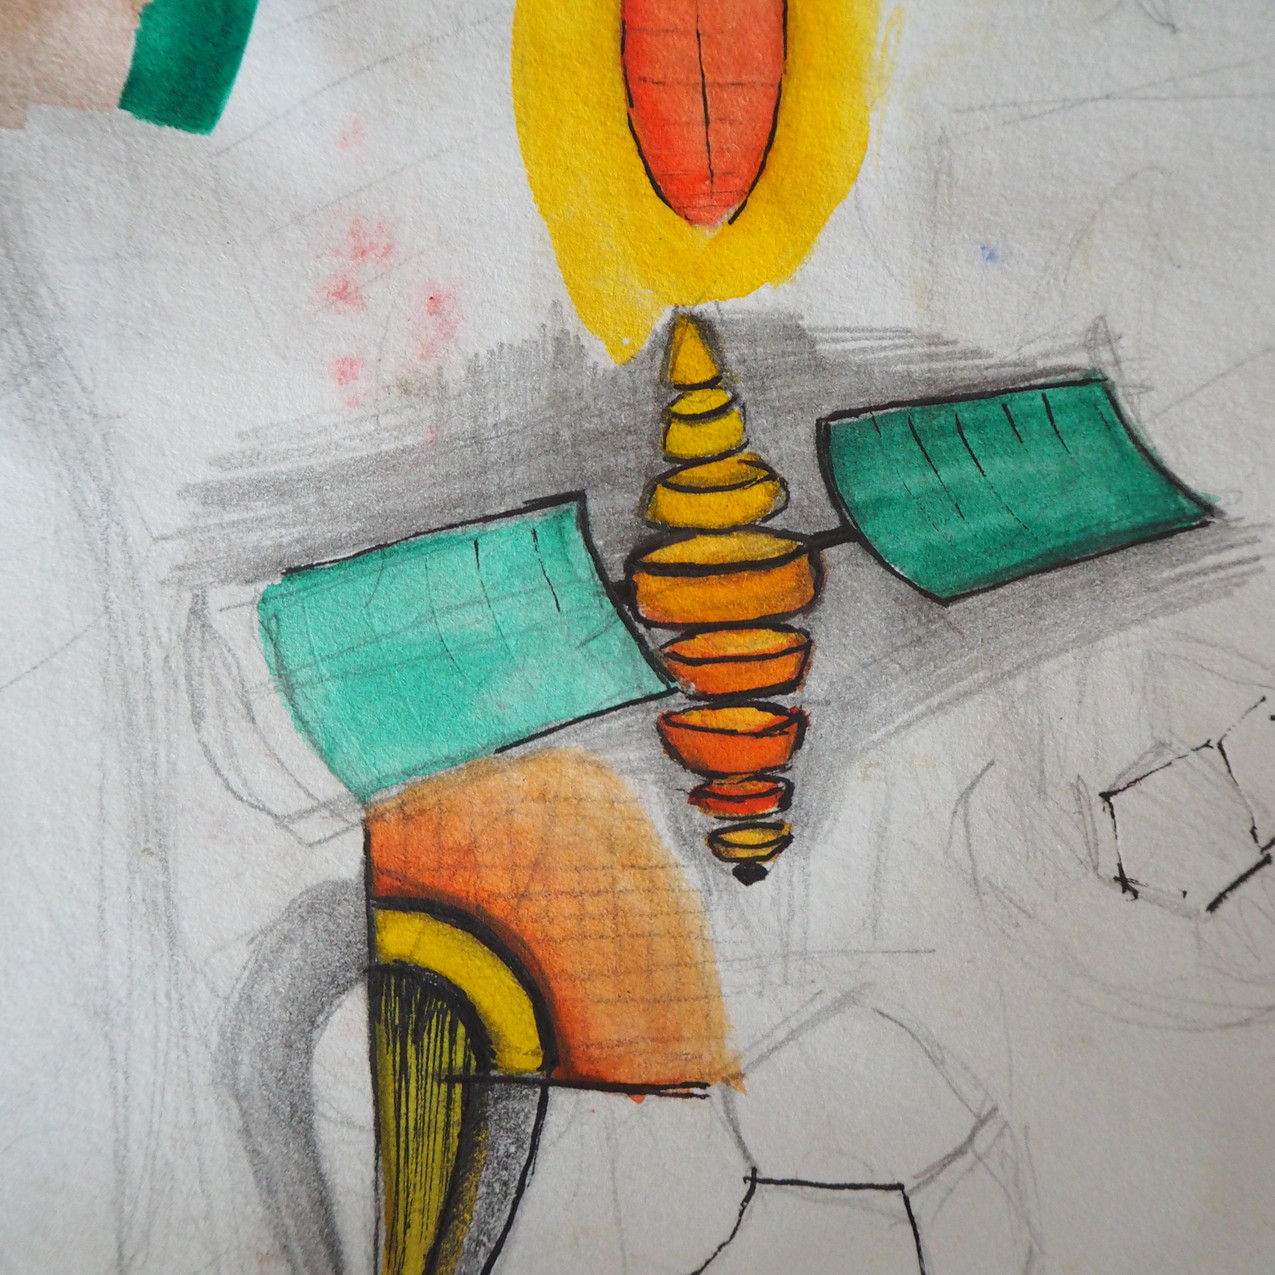 Abstract Drawing Experiments